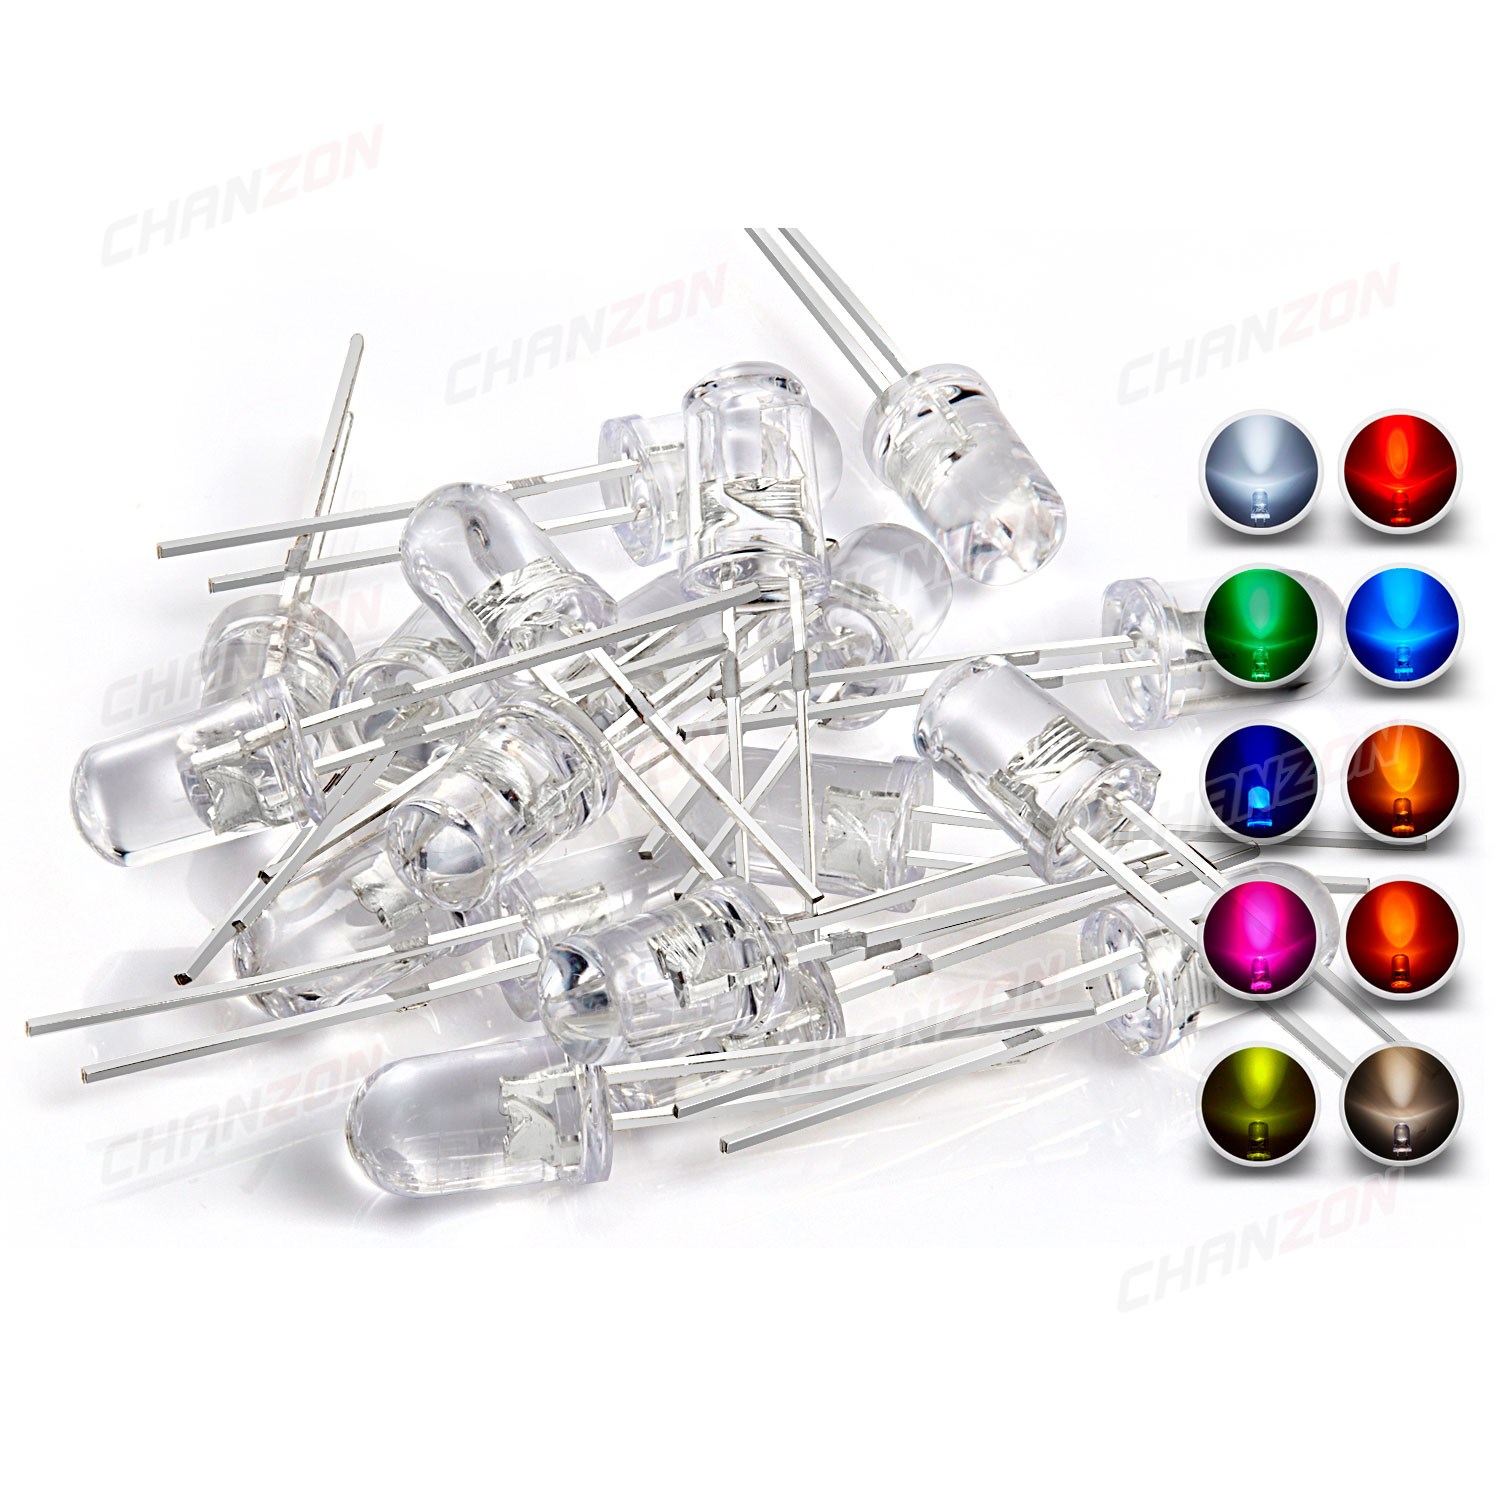 100pcs 5mm LED Kit Pack Warm White Red Blue Yellow Green UV Orange Pink 5 mm Round Lamp Bulb Light Emitting Diode Set Assortment